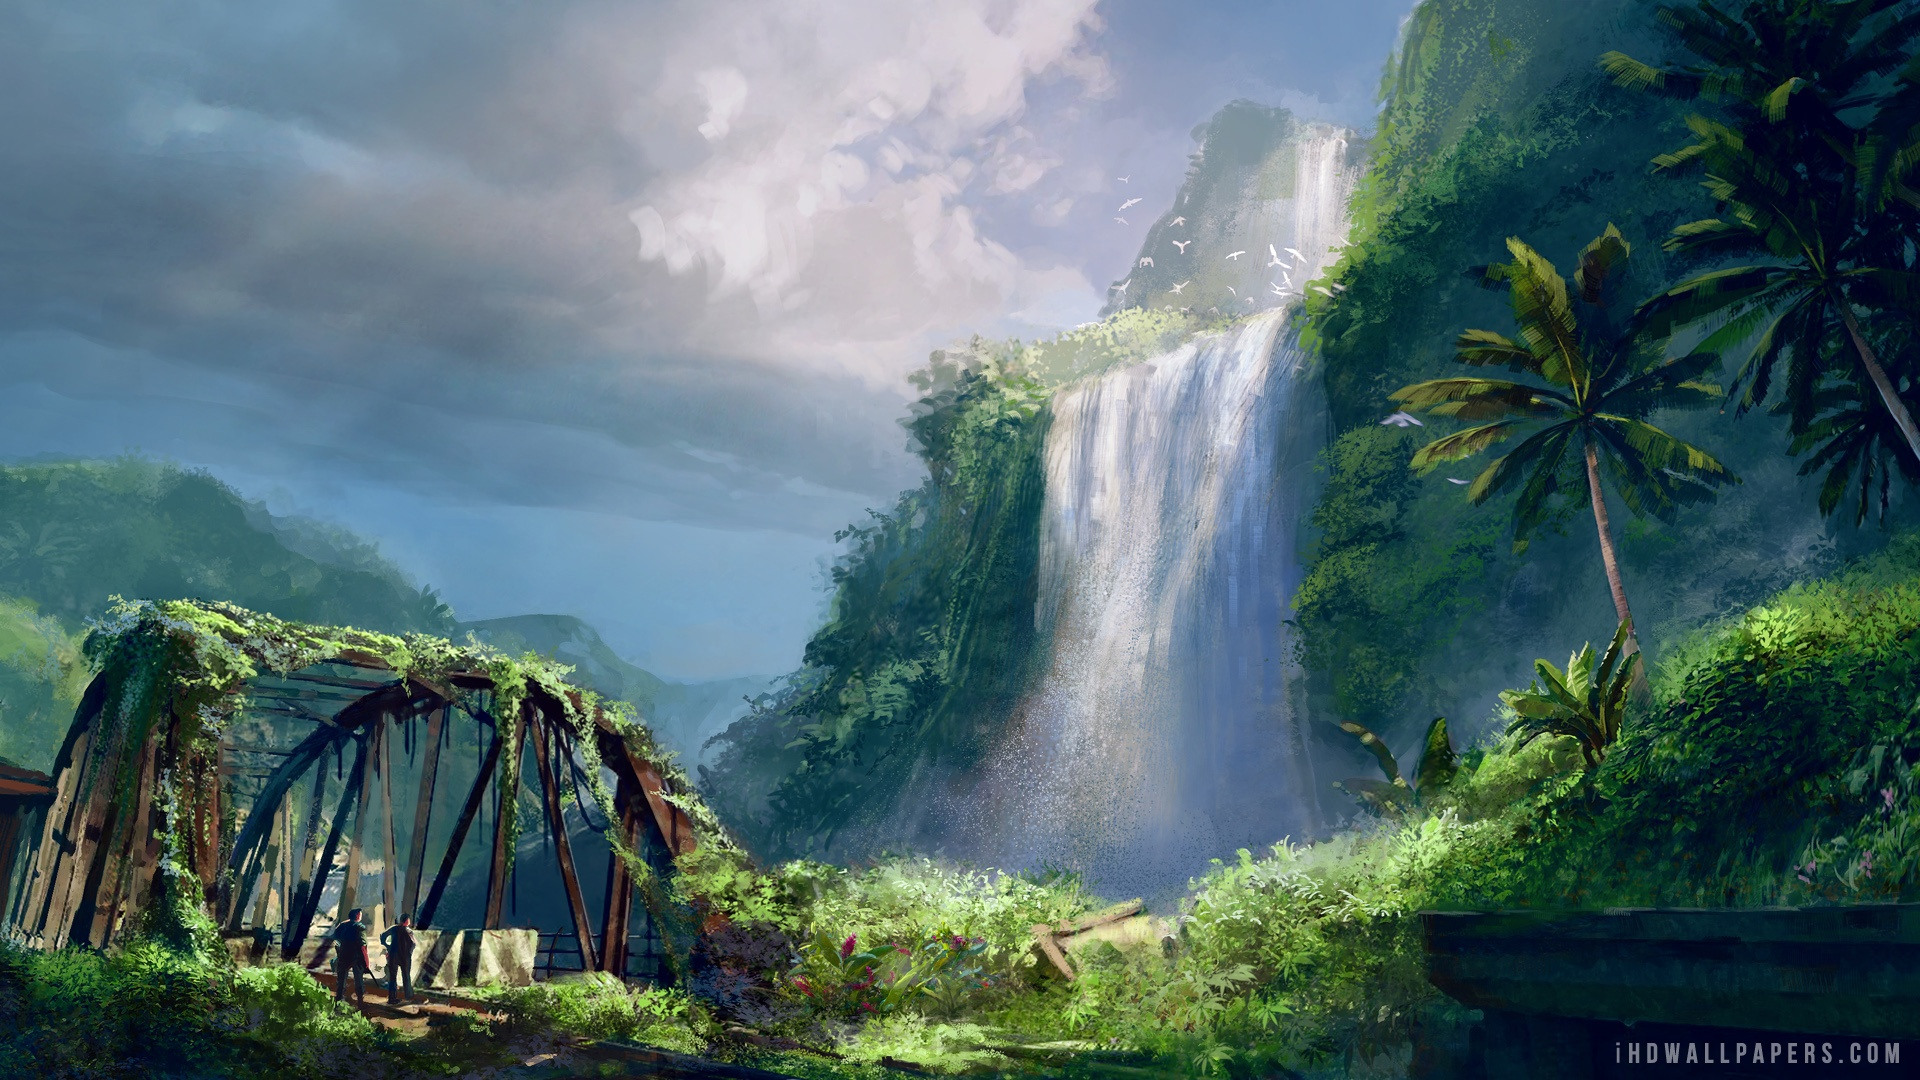 Far Cry 3 Waterfalls HD Wallpaper   iHD Wallpapers 1920x1080